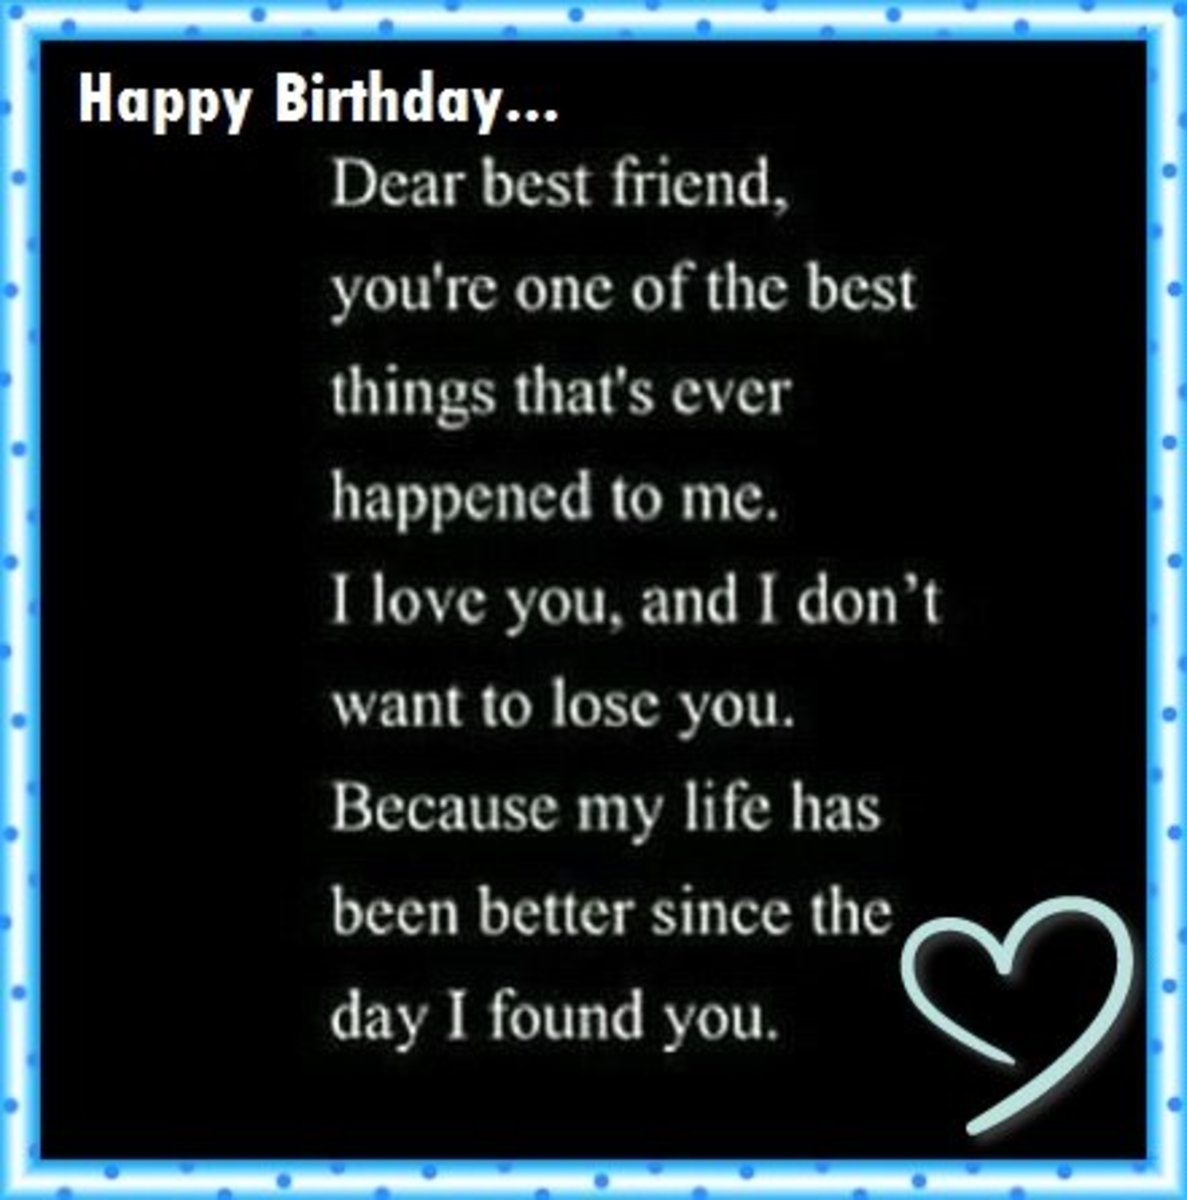 Happy Birthday Letter to My Best Friend